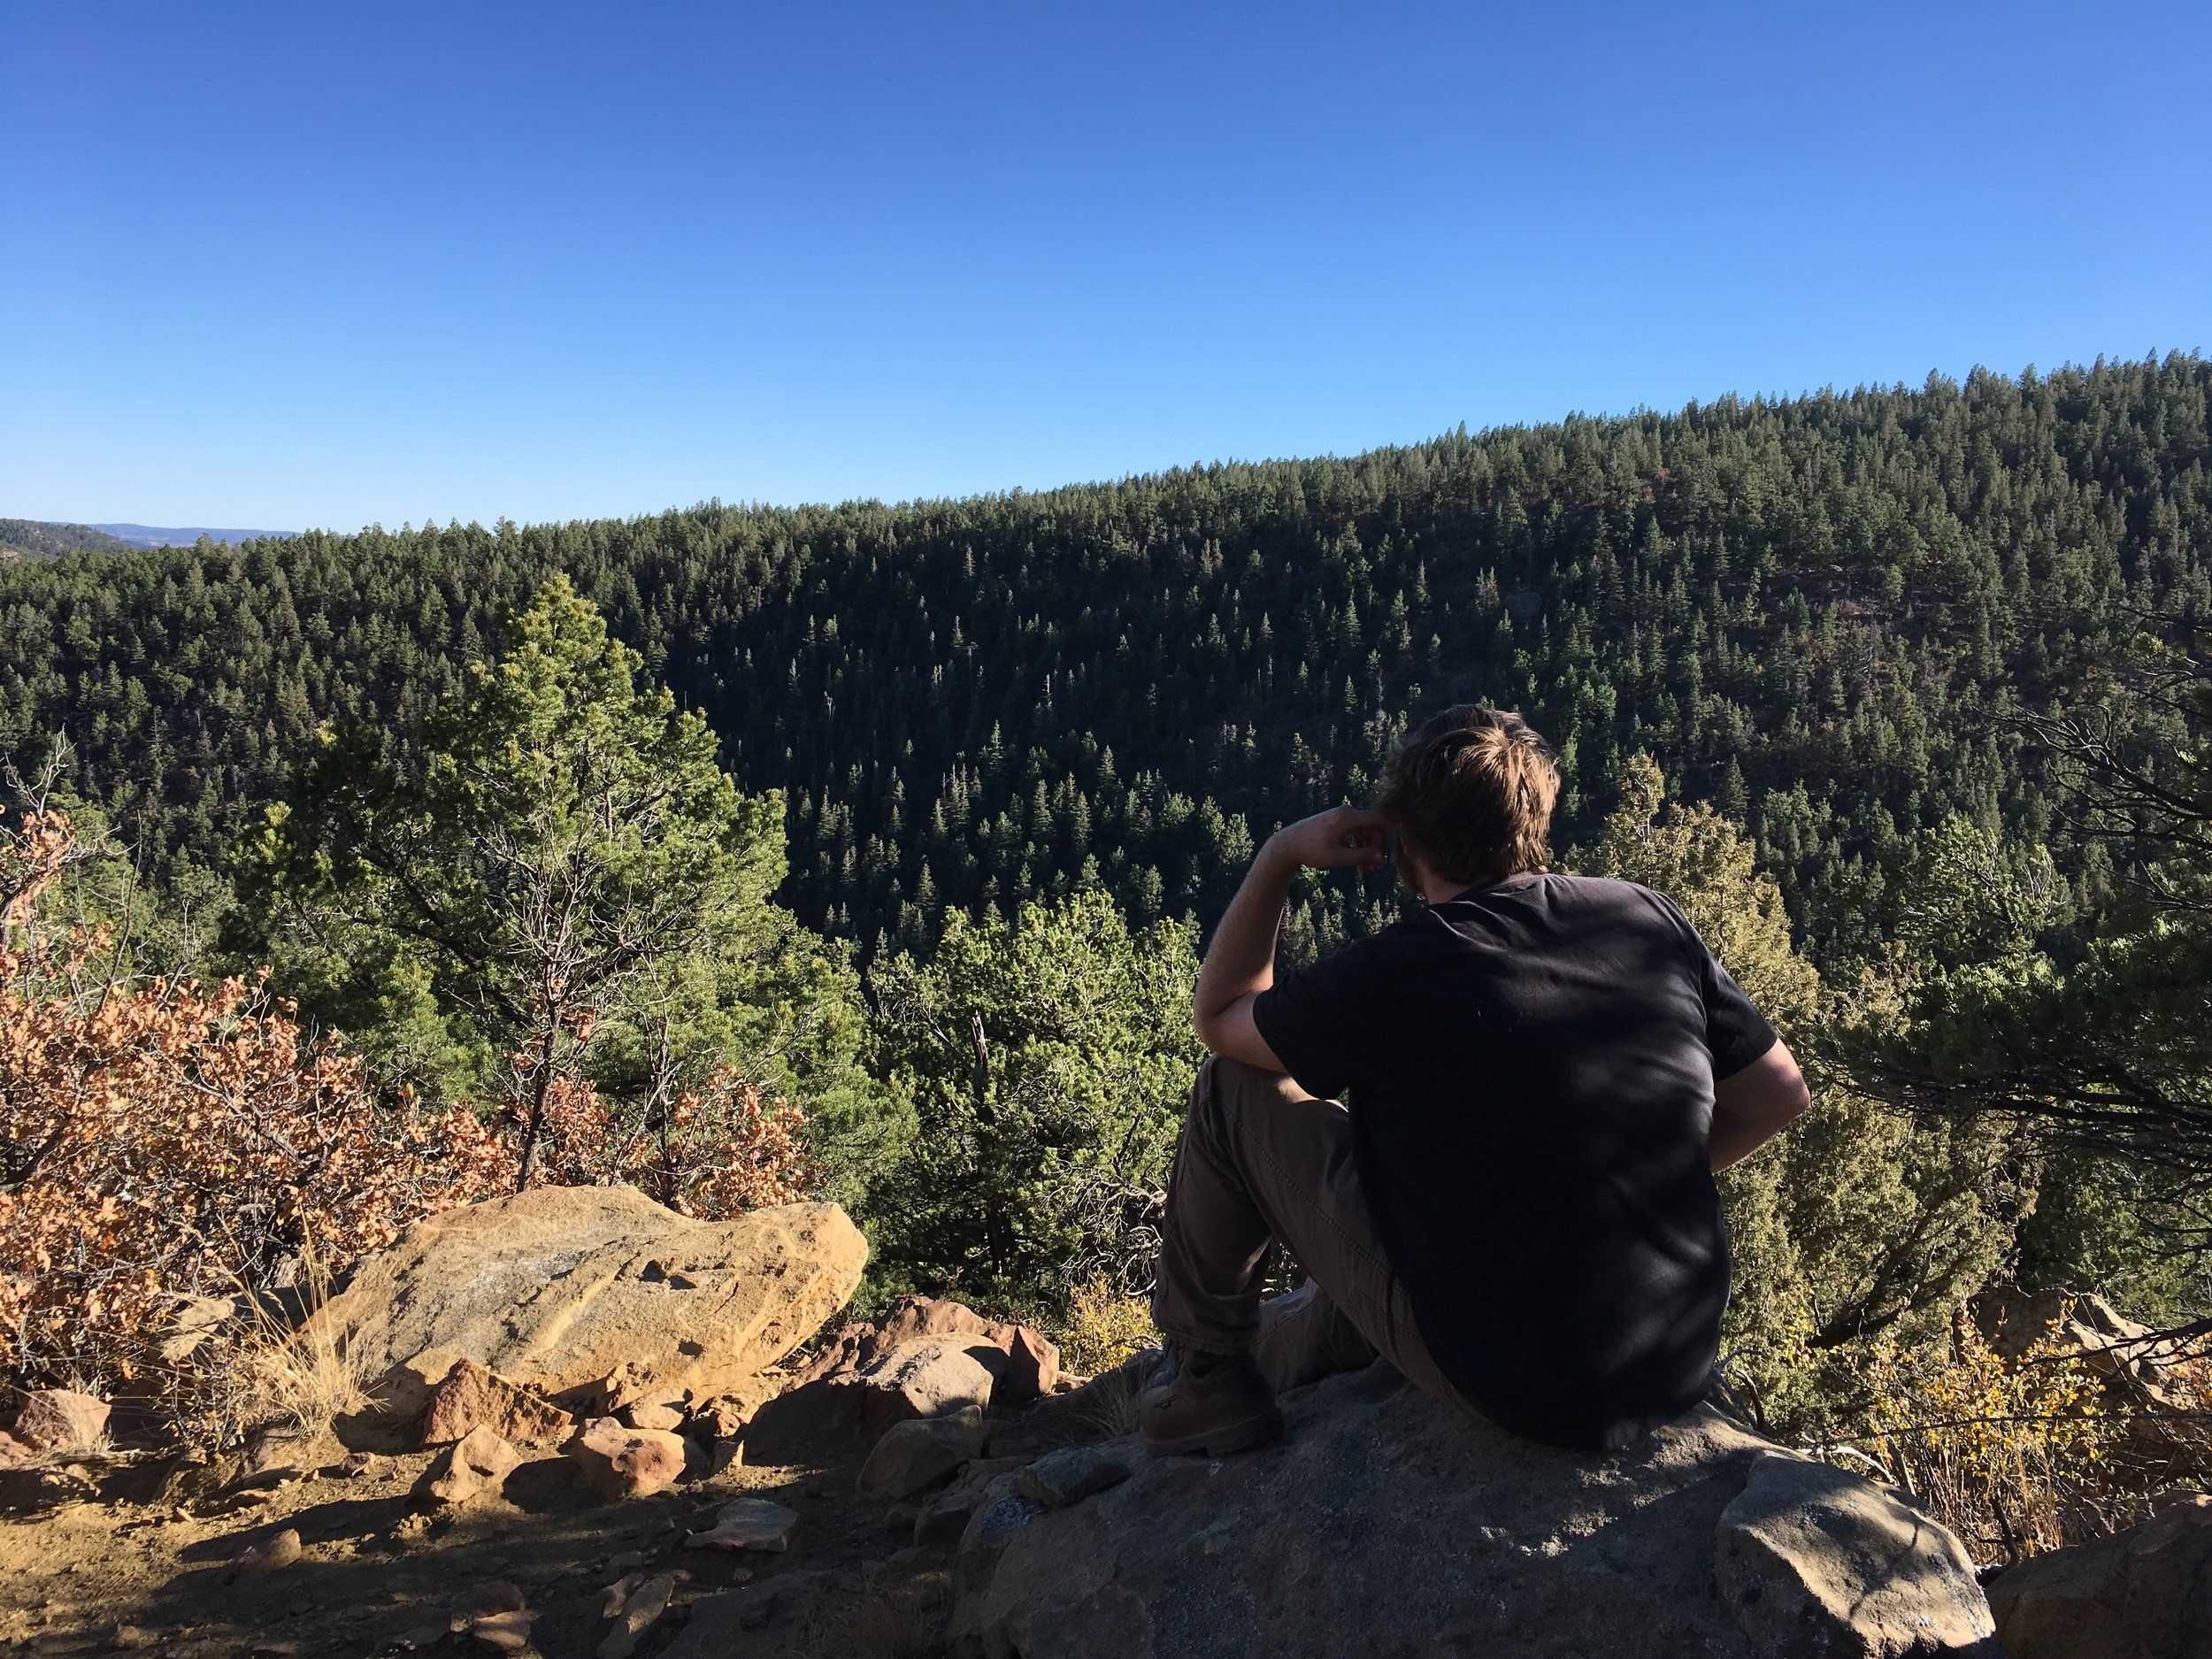 """Join us in Southern Colorado's Sangre de Cristo mountains at an altitude of 8,000' for an extraordinary educational experience! Four days of """"off the grid"""" experiential education: history, human geography, cultural anthropology, and suatainability practices all from a Native American perspective."""